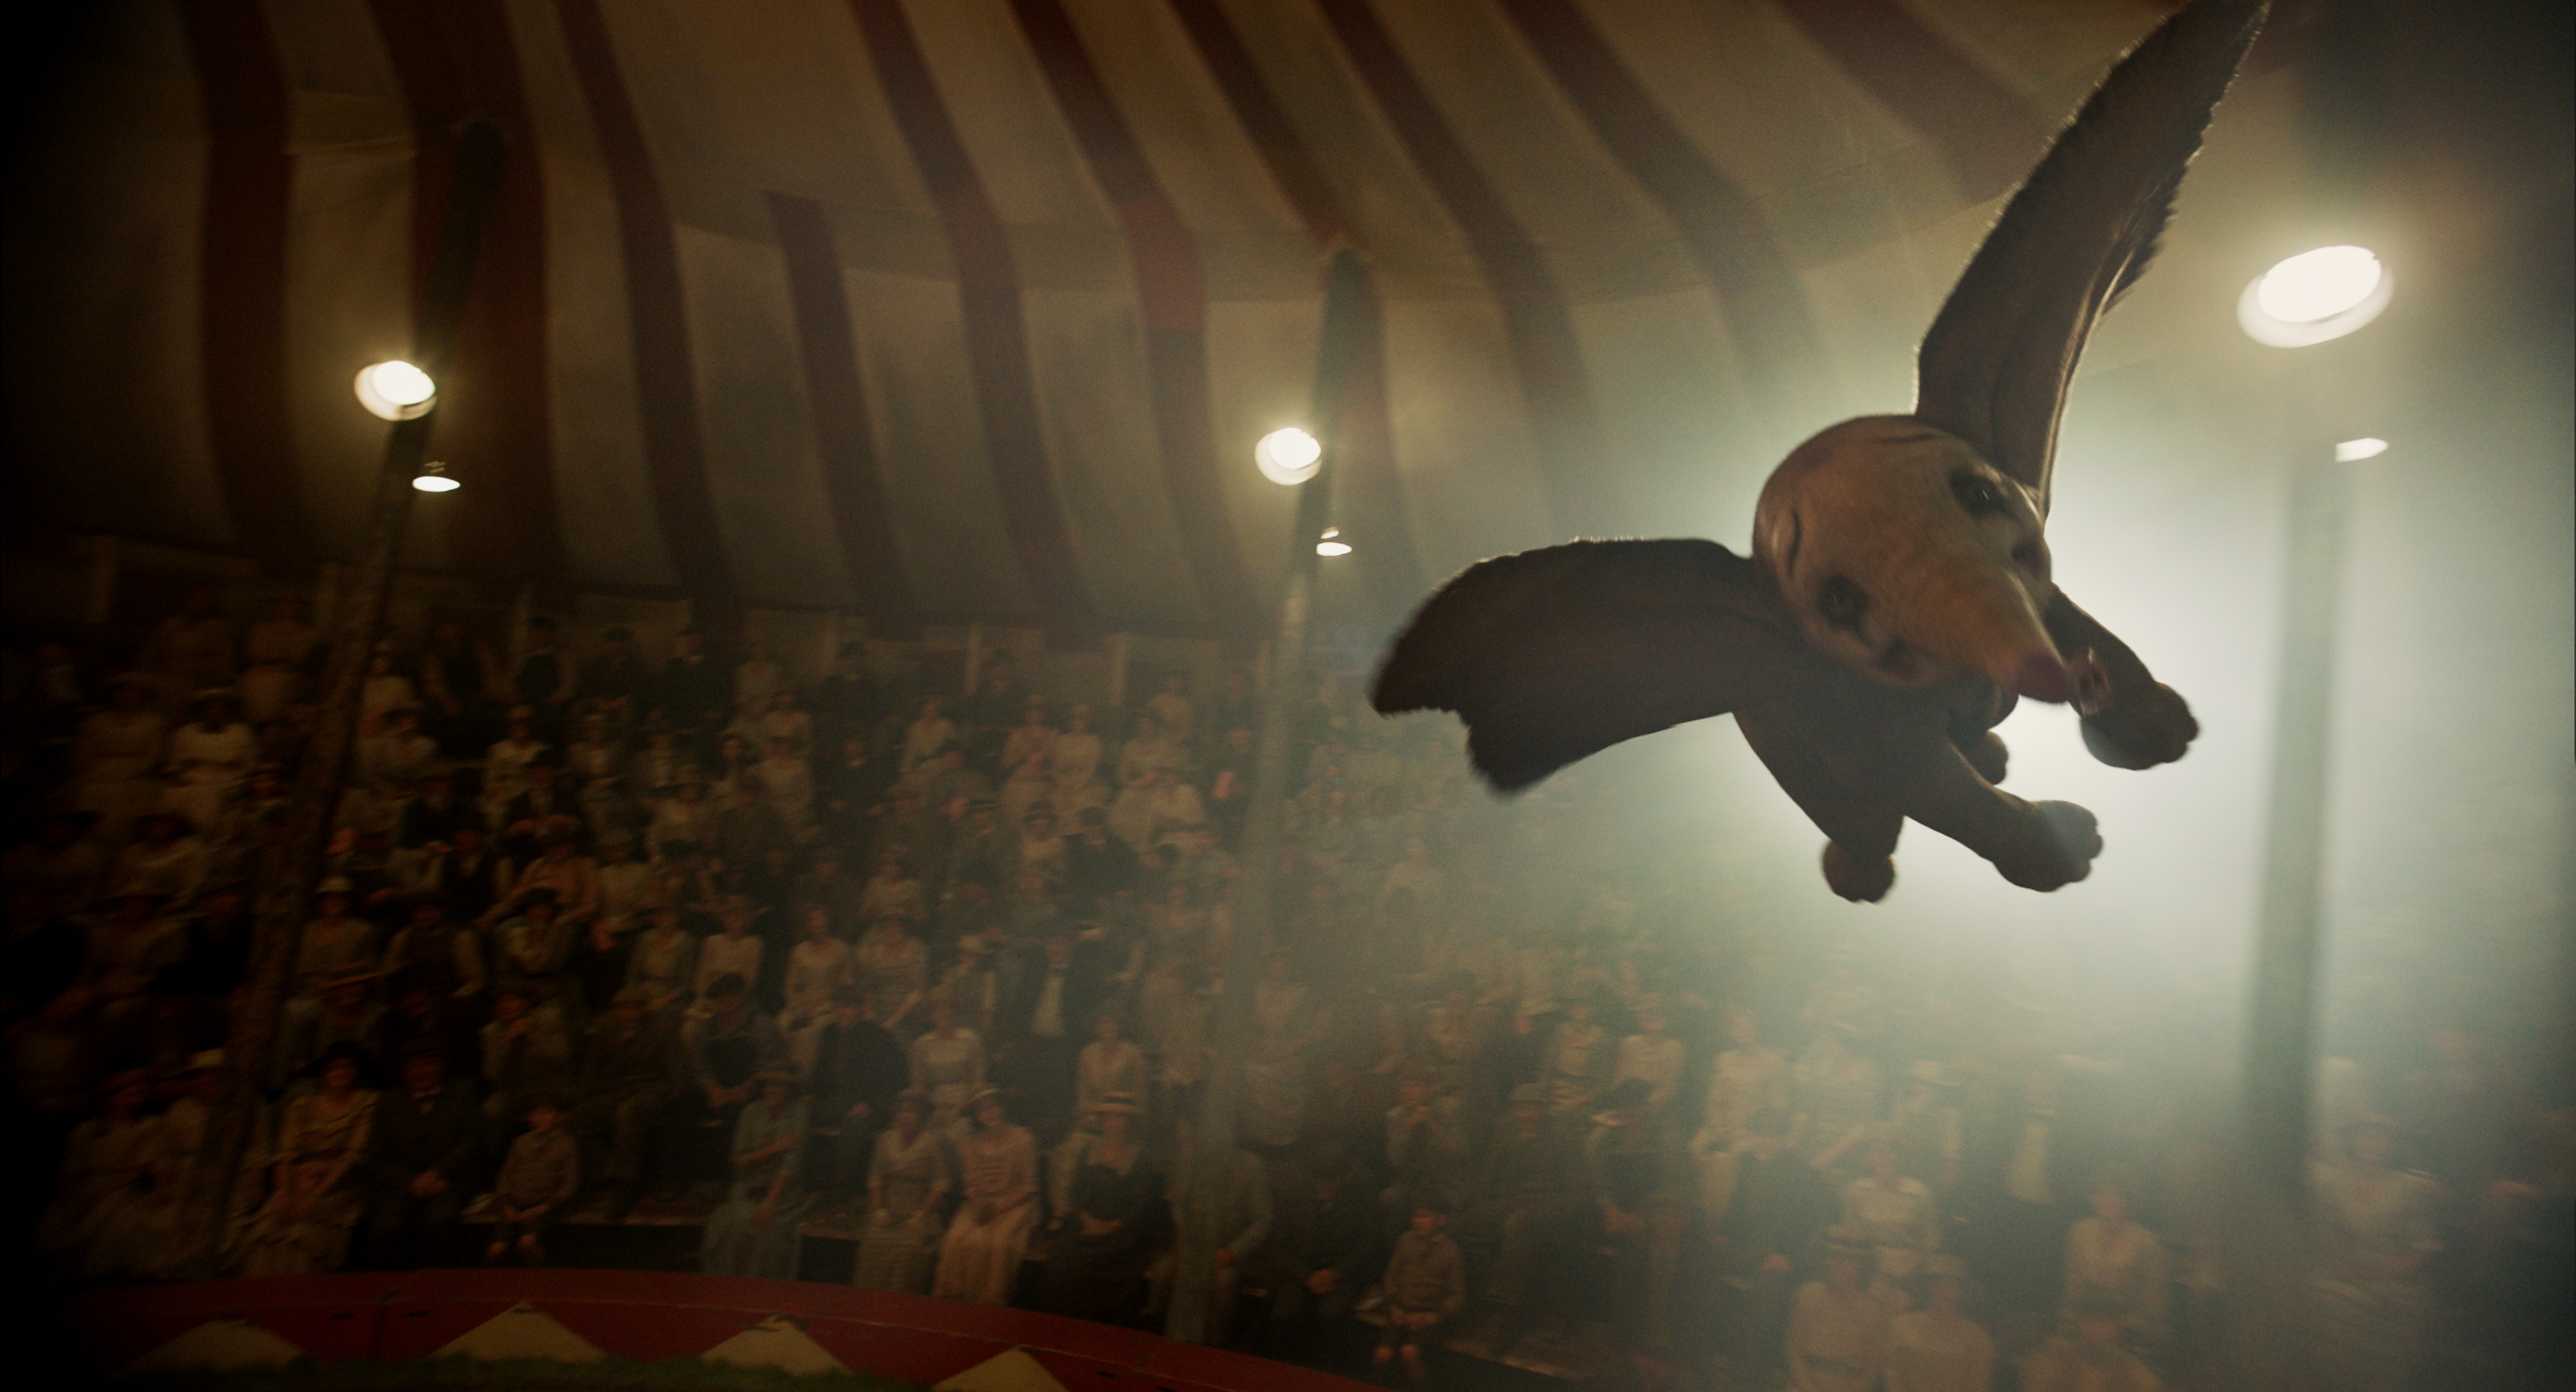 """FLYING HIGH – In Disney's new live-action adventure """"Dumbo,"""" a newborn elephant with giant ears discovers he can fly, and he's destined to be a star, which may or may not be a good thing. Directed by Tim Burton, """"Dumbo"""" flies into theaters on March 29, 2019."""